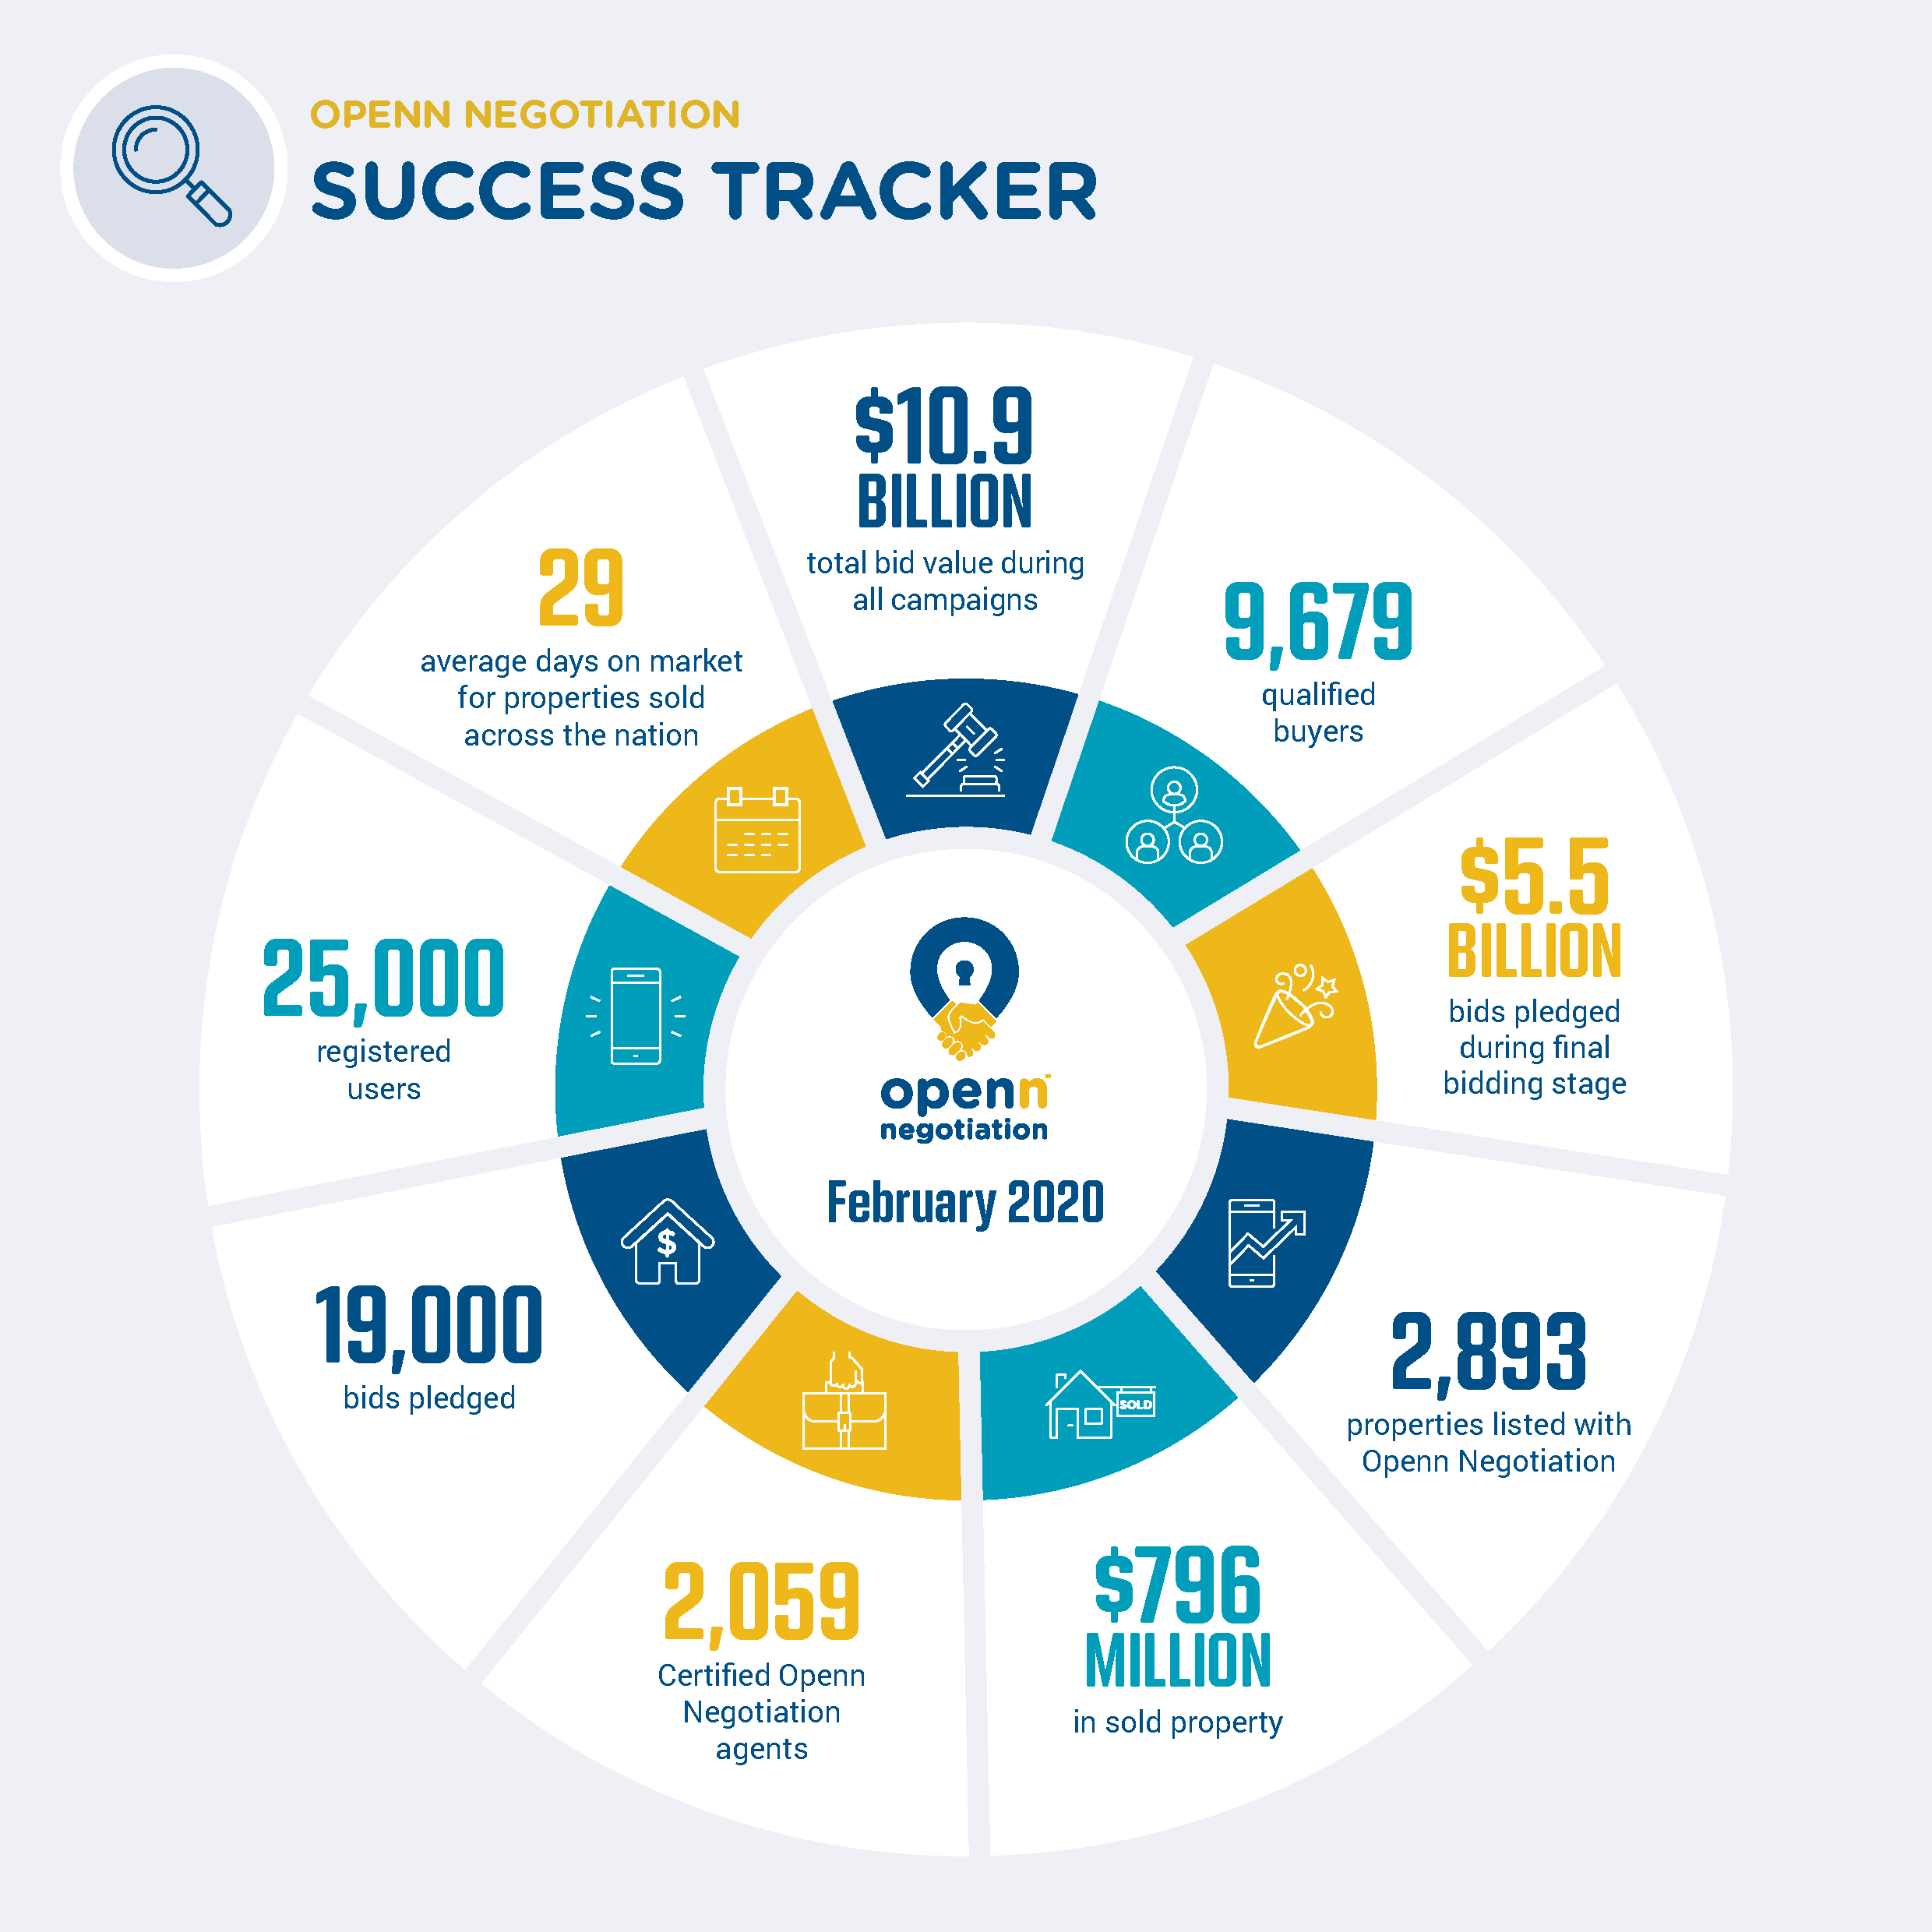 Success Tracker - Feb 2020